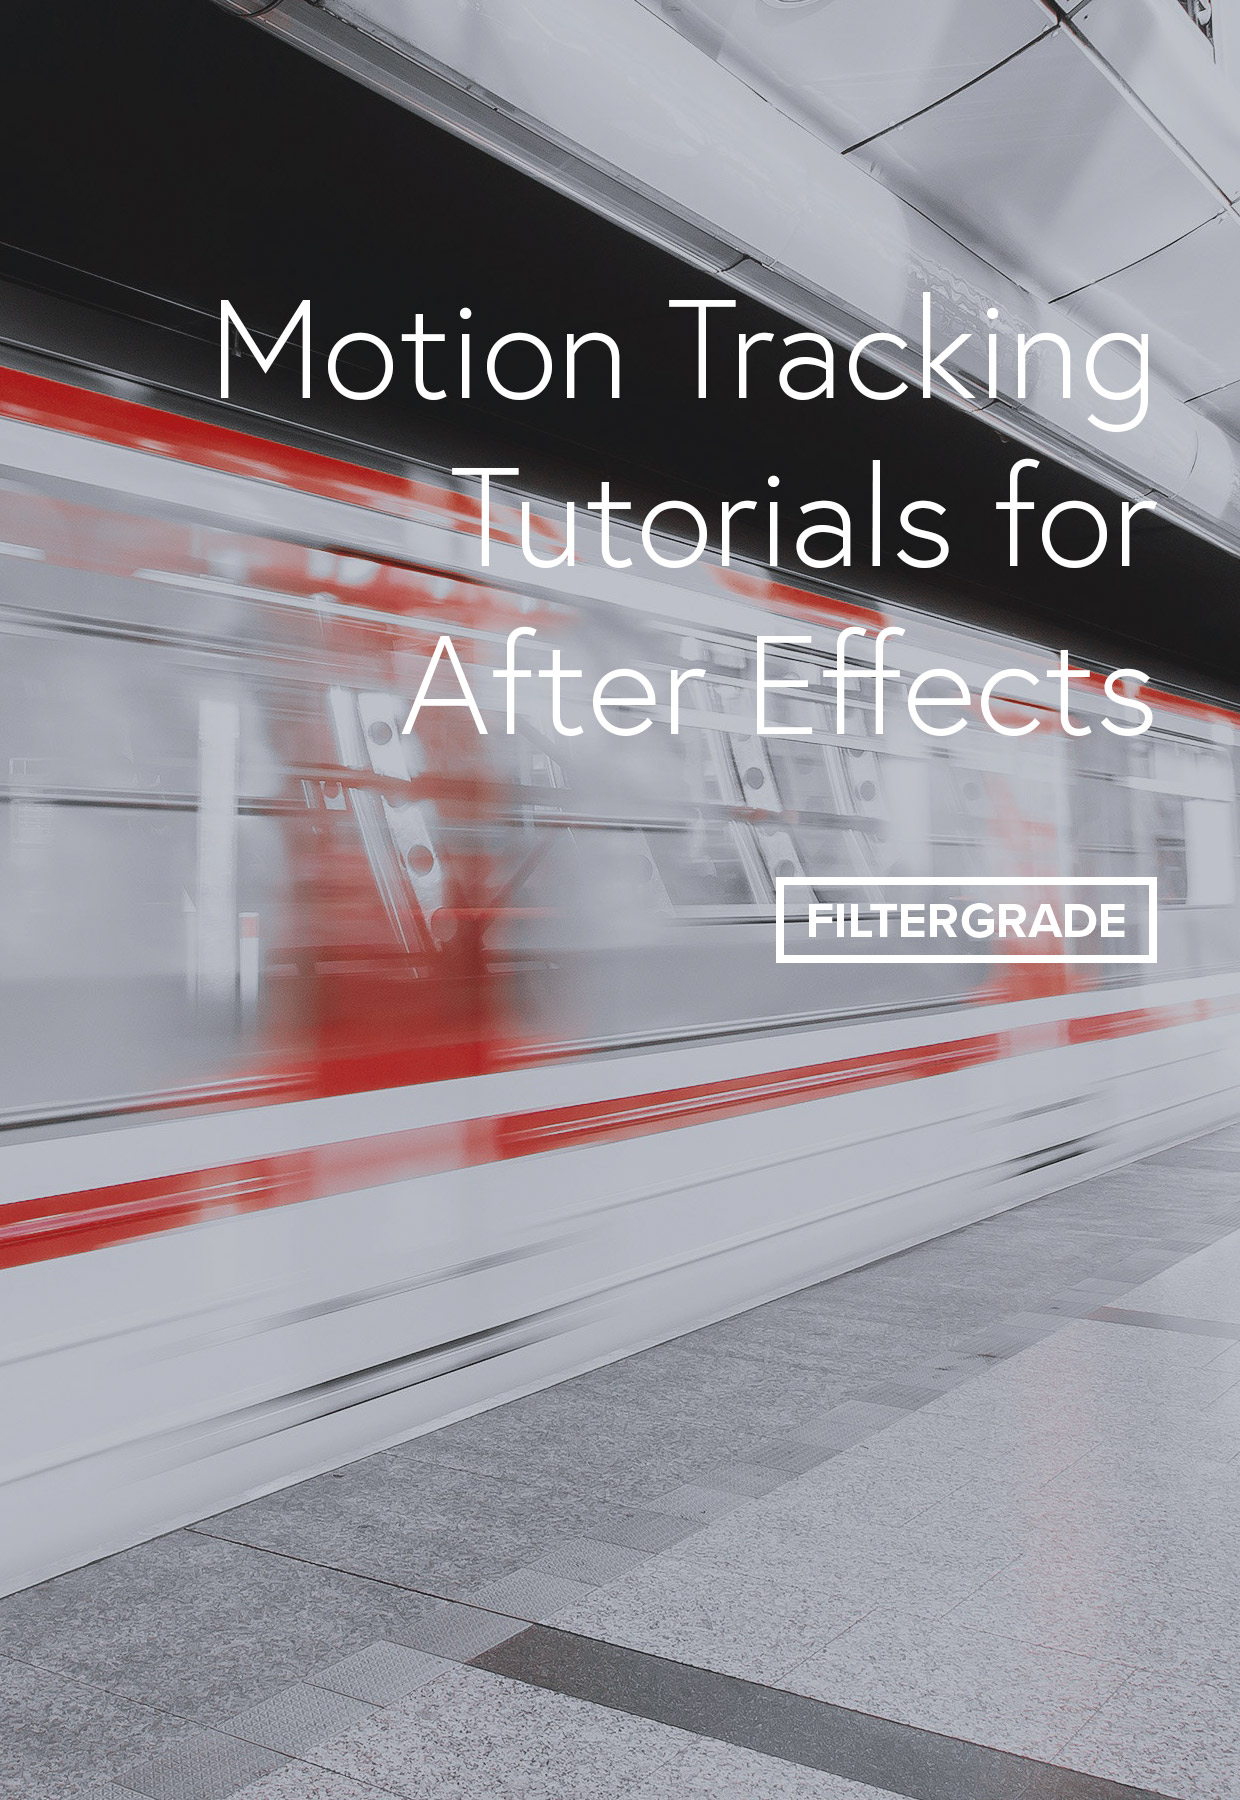 Tutorials for motion tracking in After Effects. Learn beginner and advanced techniques!